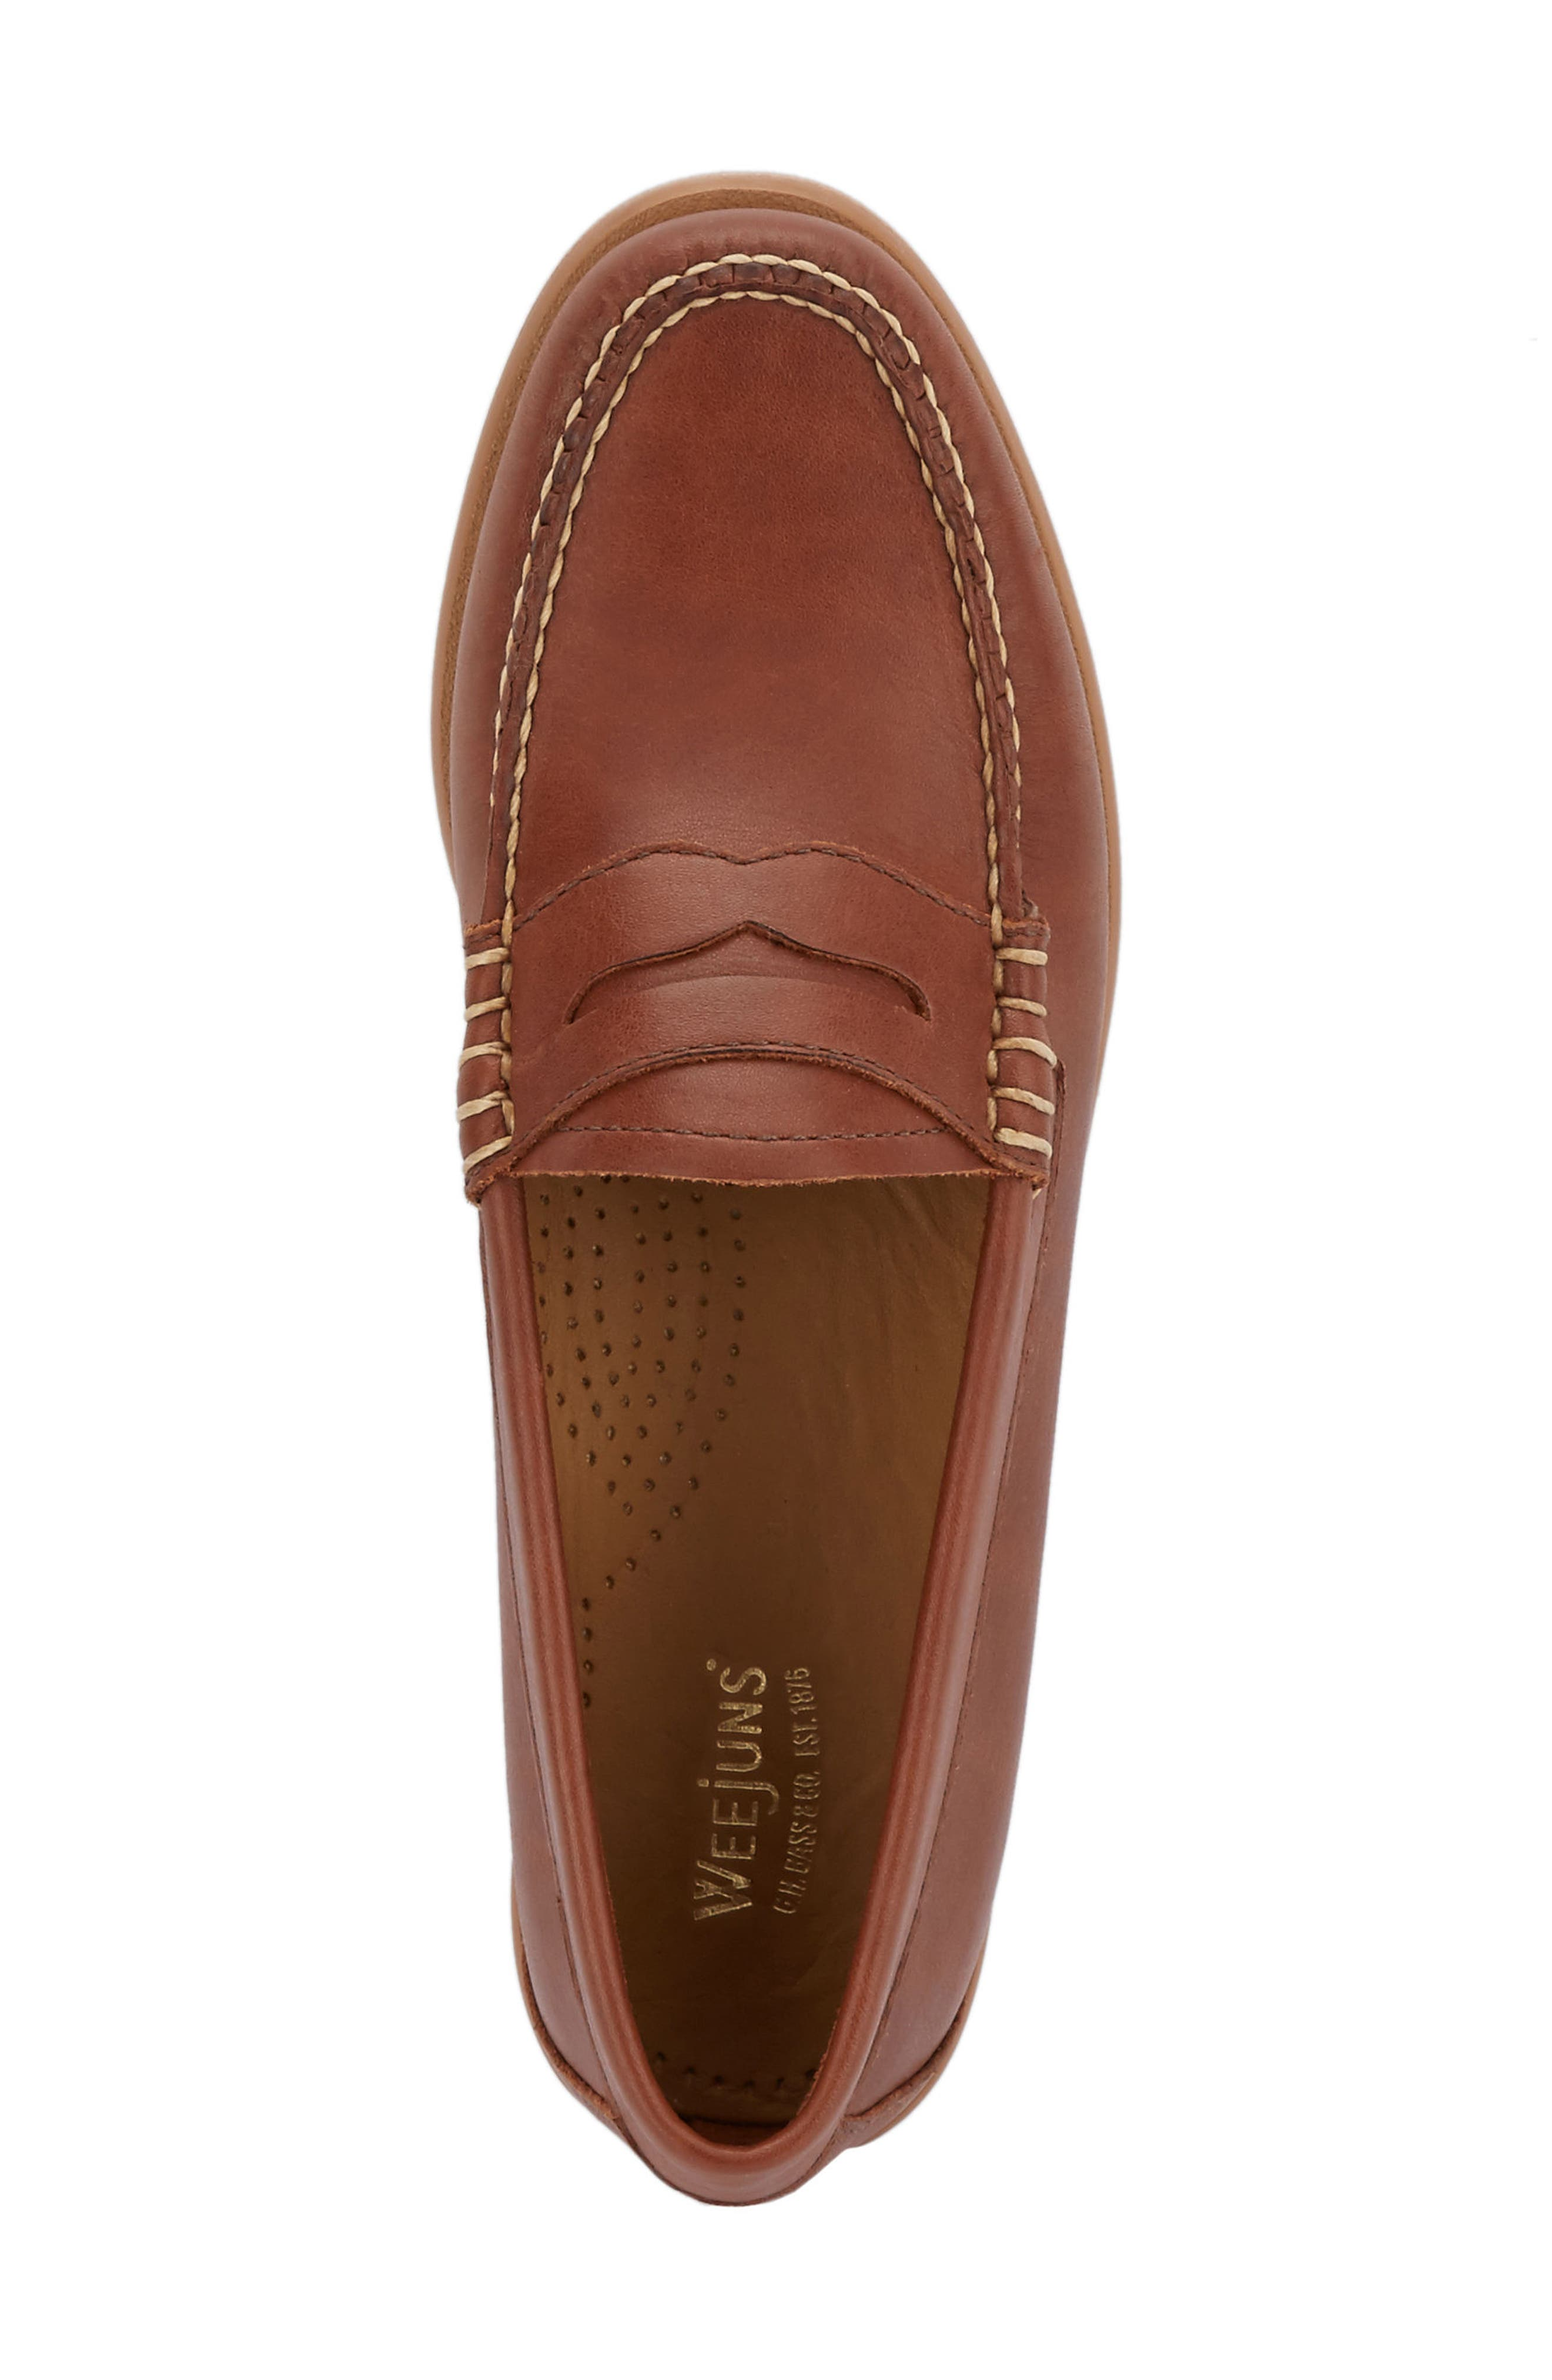 'Whitney' Loafer,                             Alternate thumbnail 3, color,                             COGNAC LEATHER